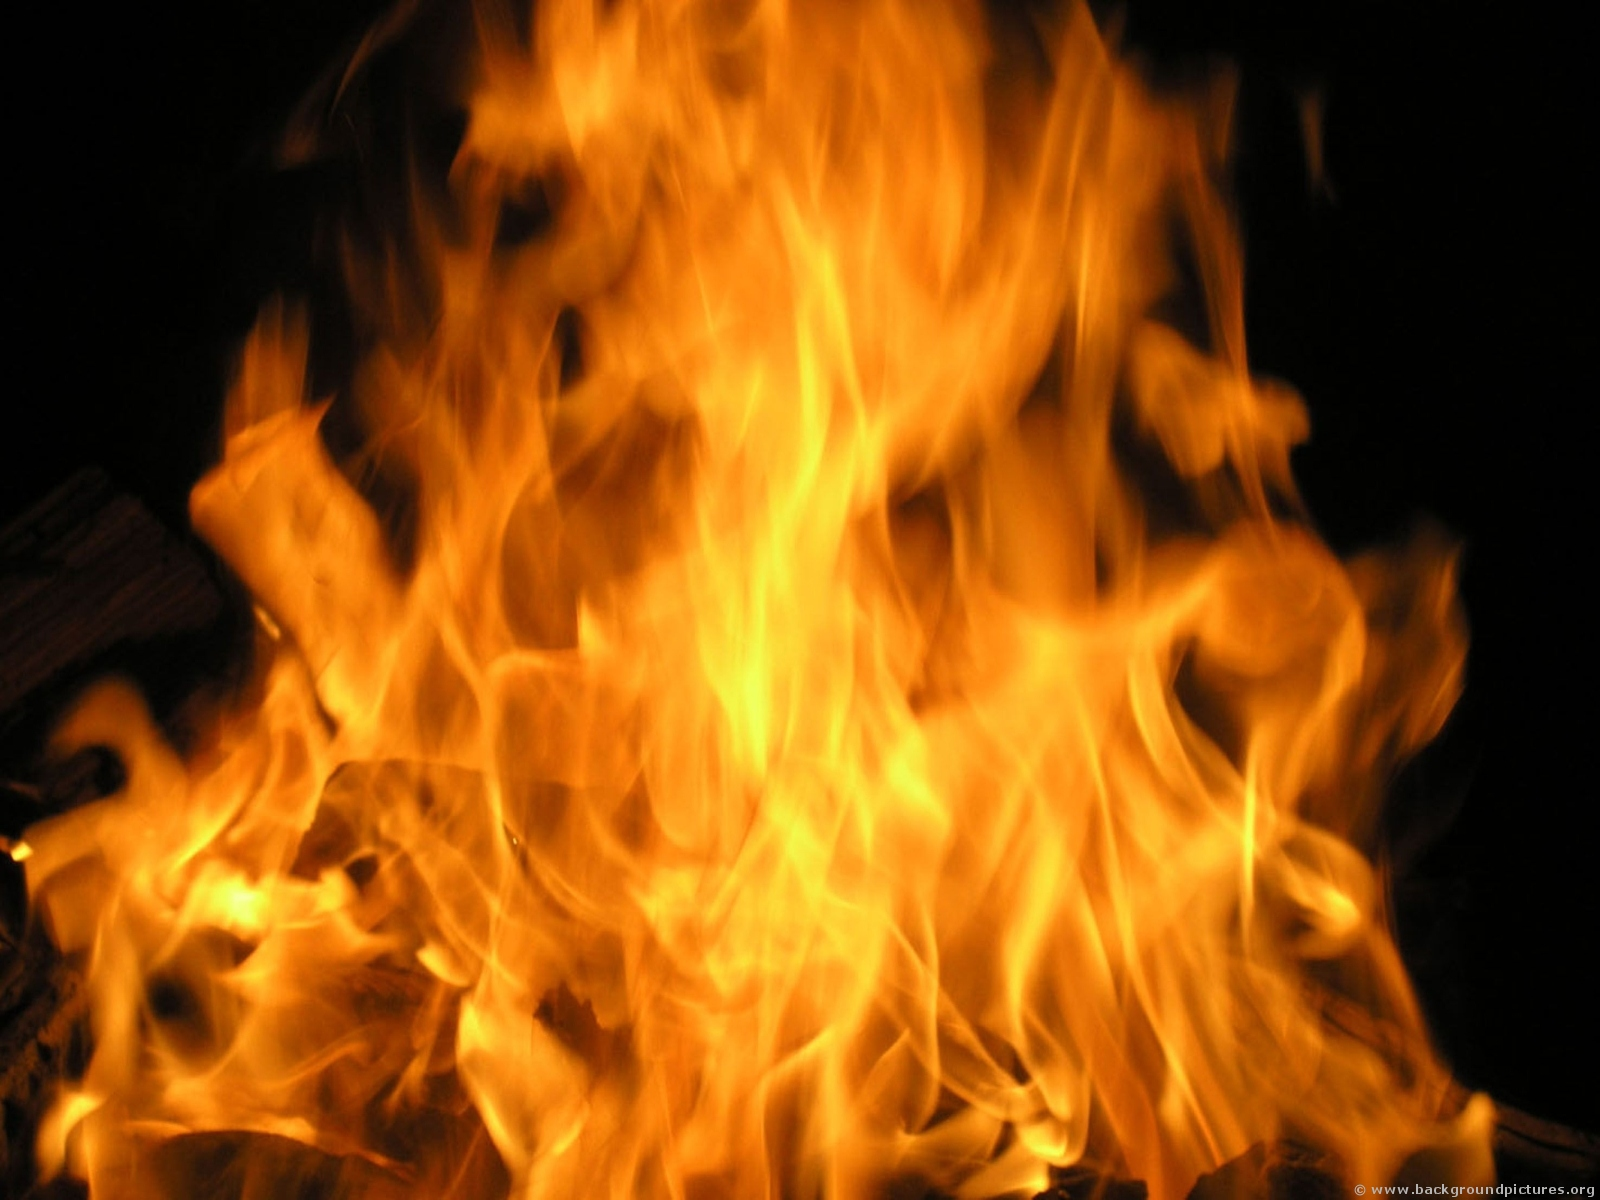 MAN INJURED IN FORT SASK FIRE